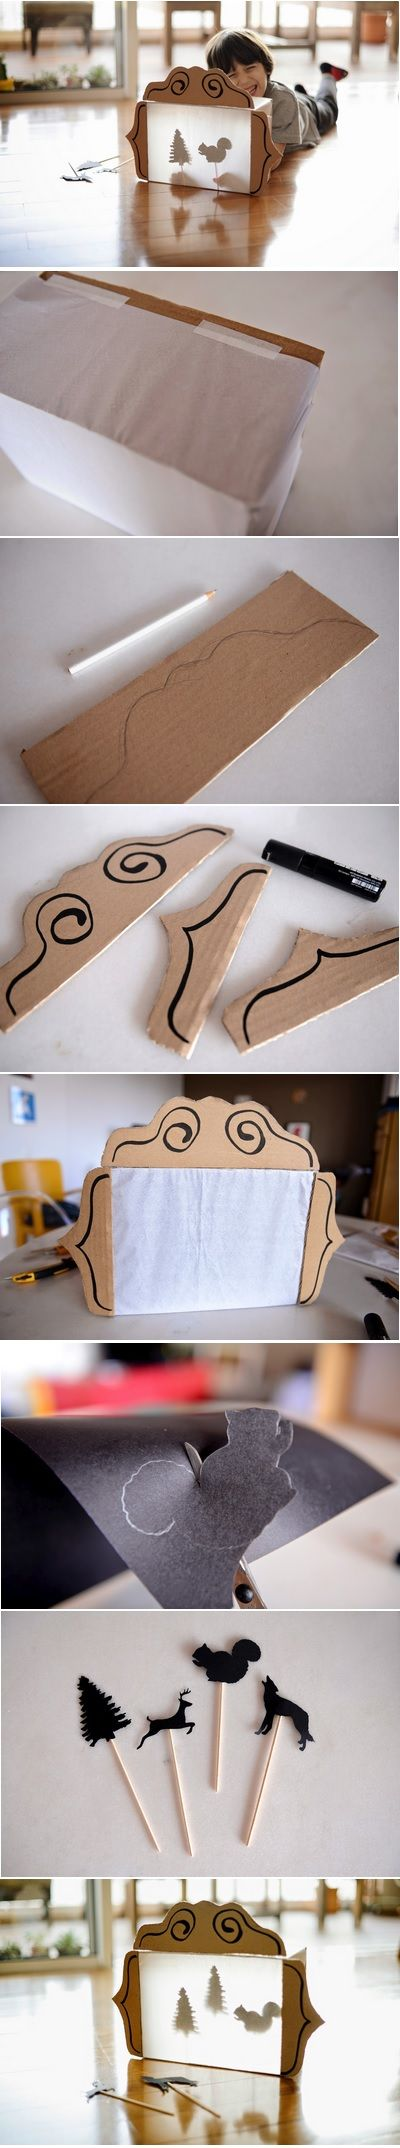 DIY Shadow puppet theater: